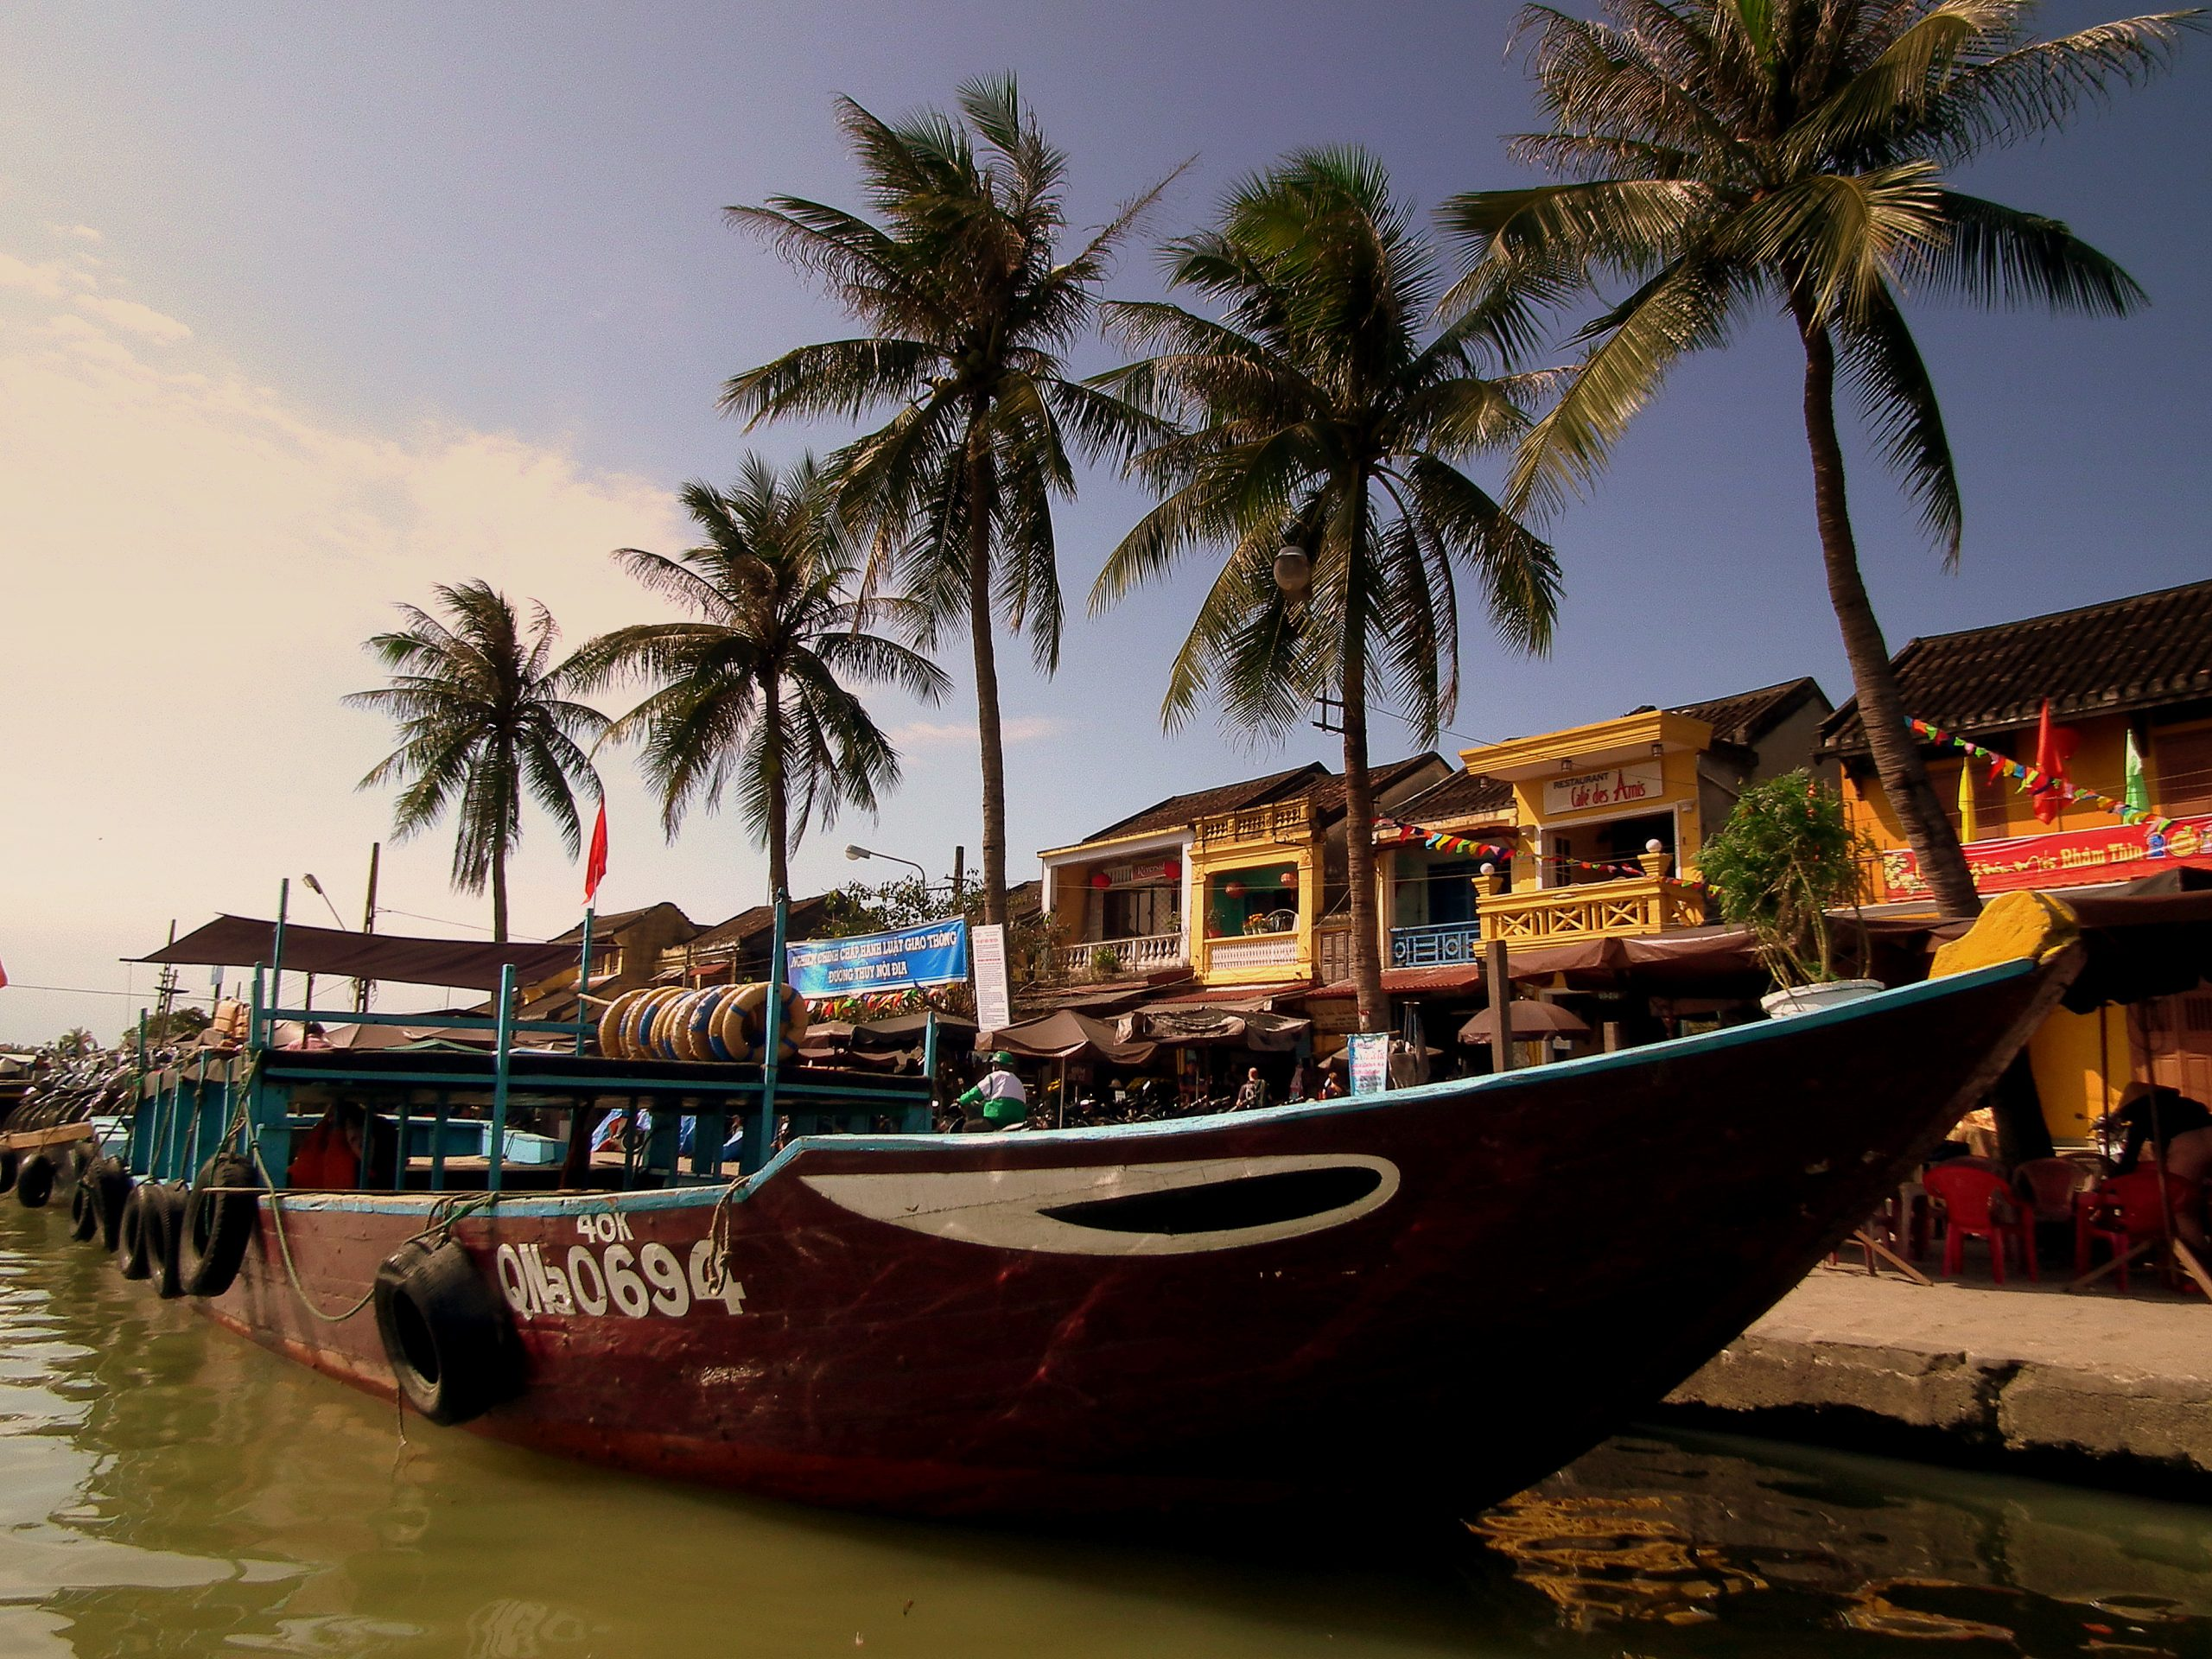 Hoi An - Top Place in Vietnam That Every Tourist Must Visit